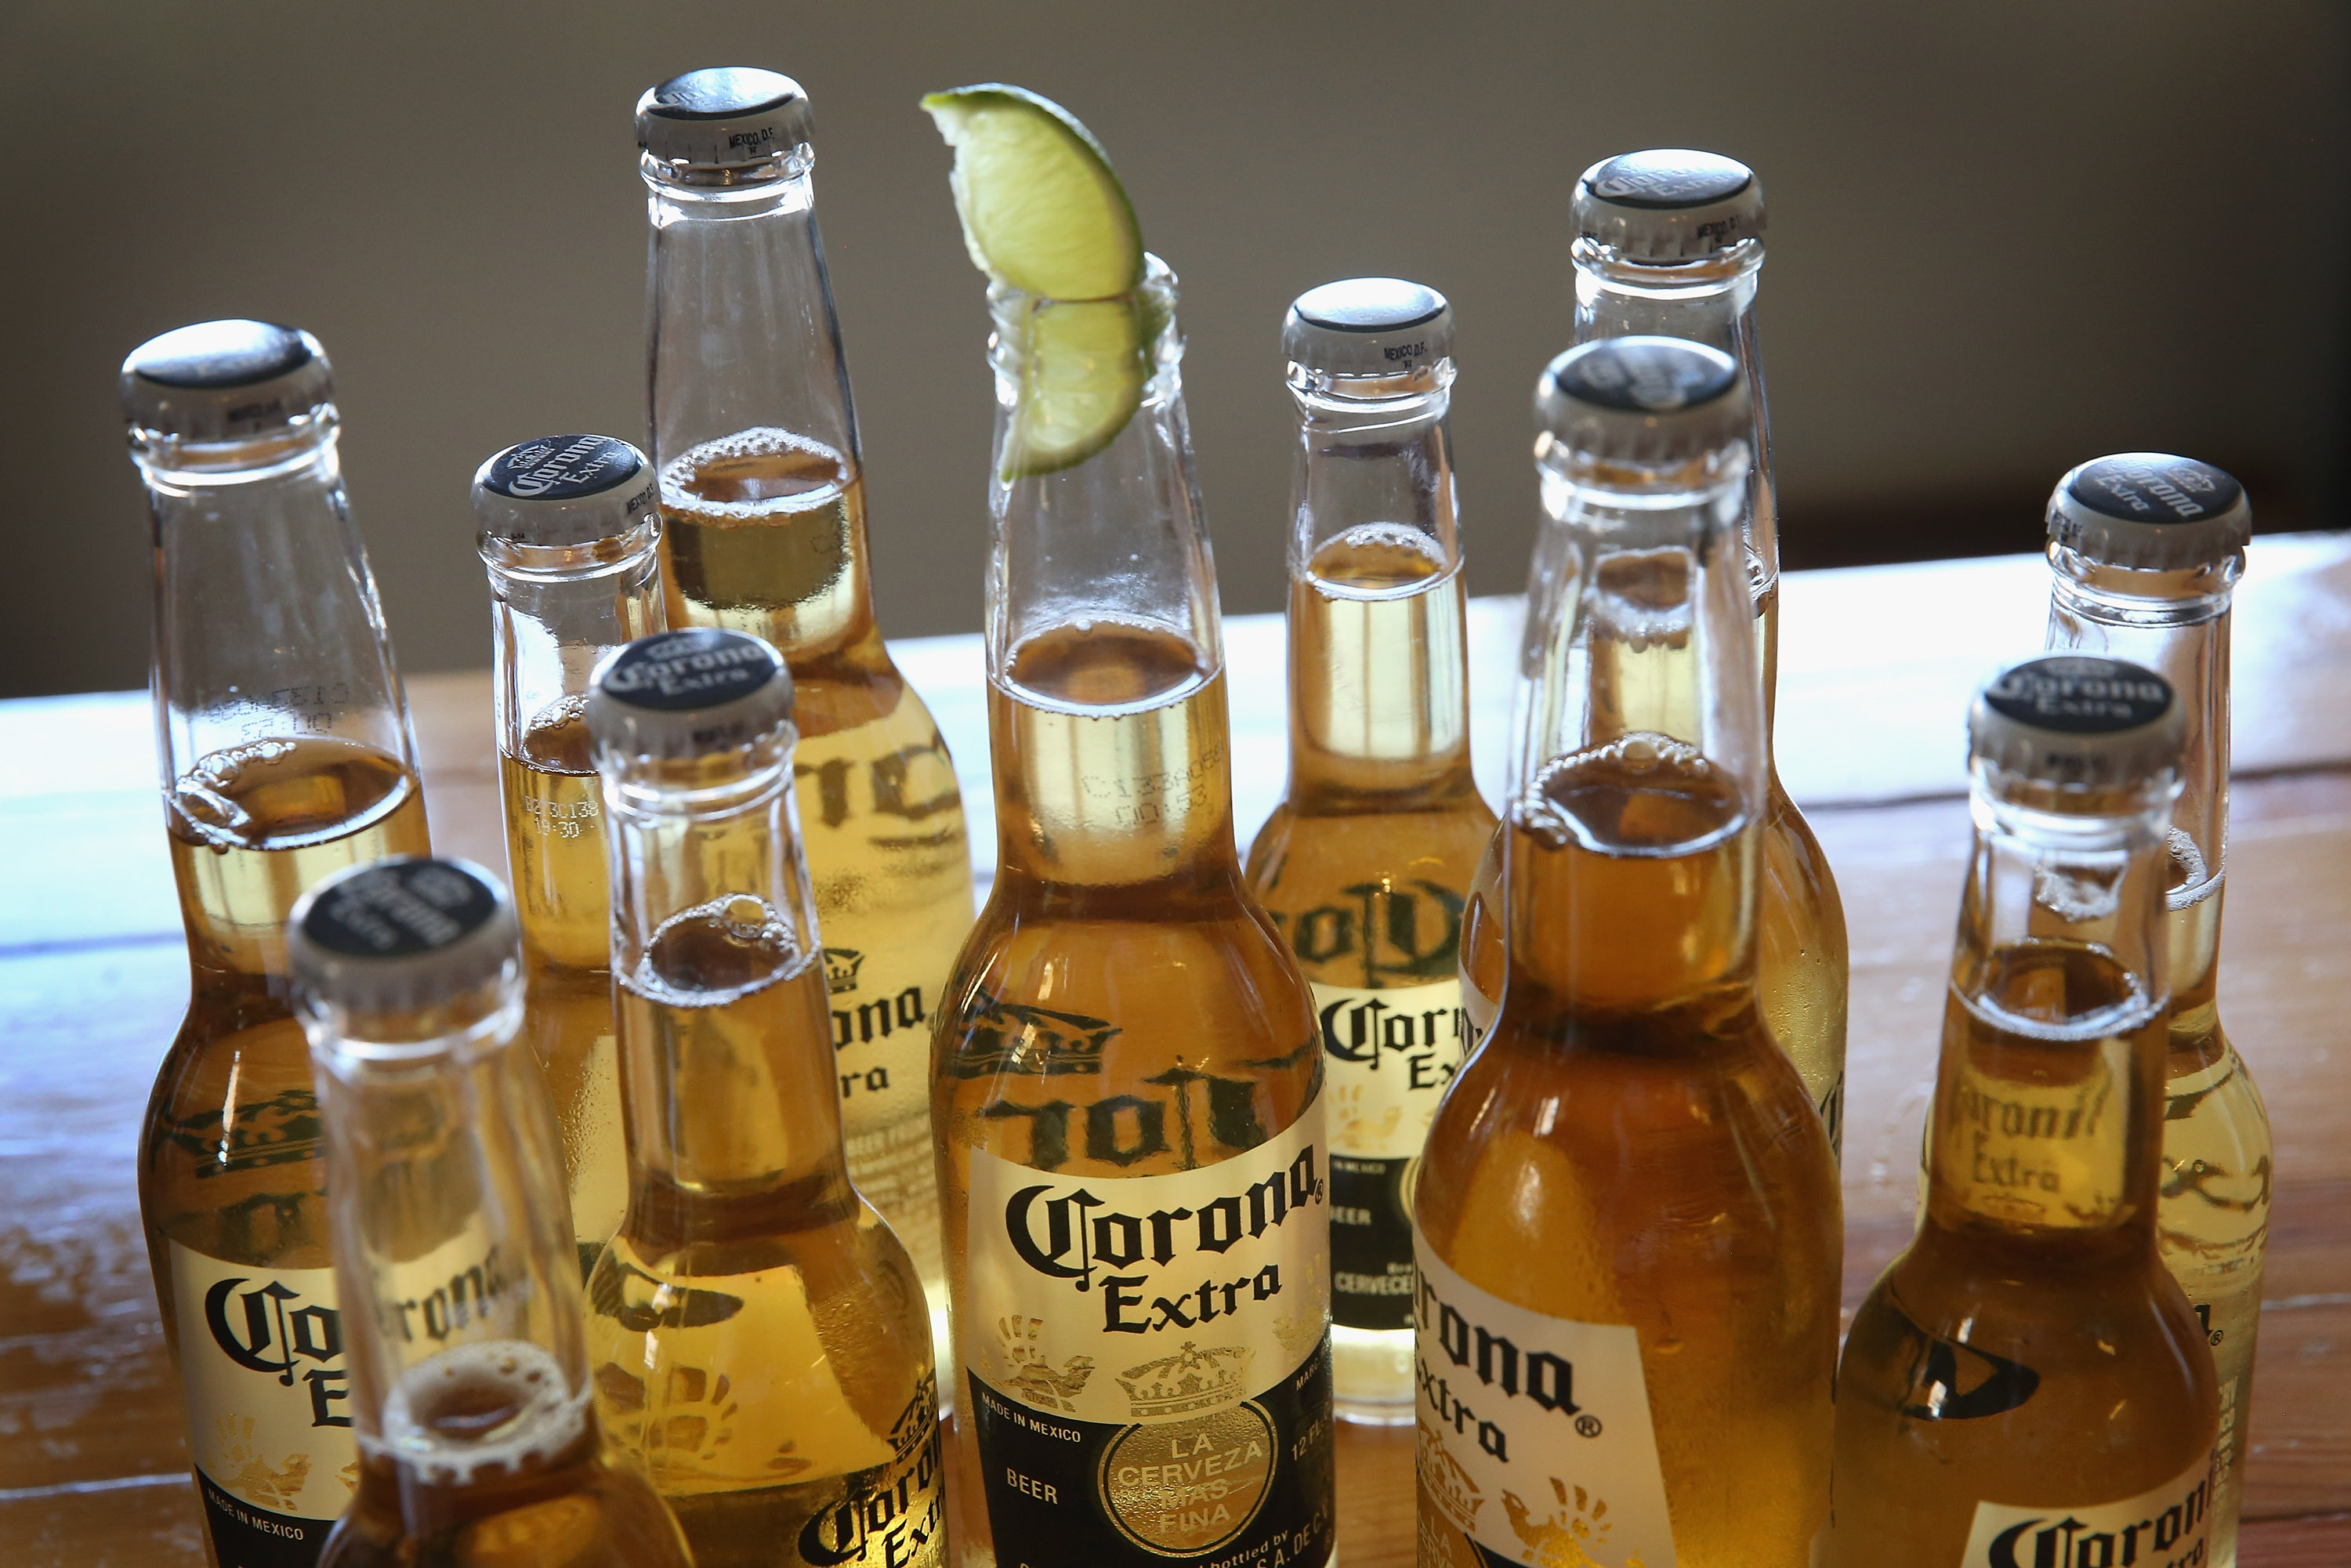 Bottles of Corona beer are shown on June 7, 2013, in Chicago